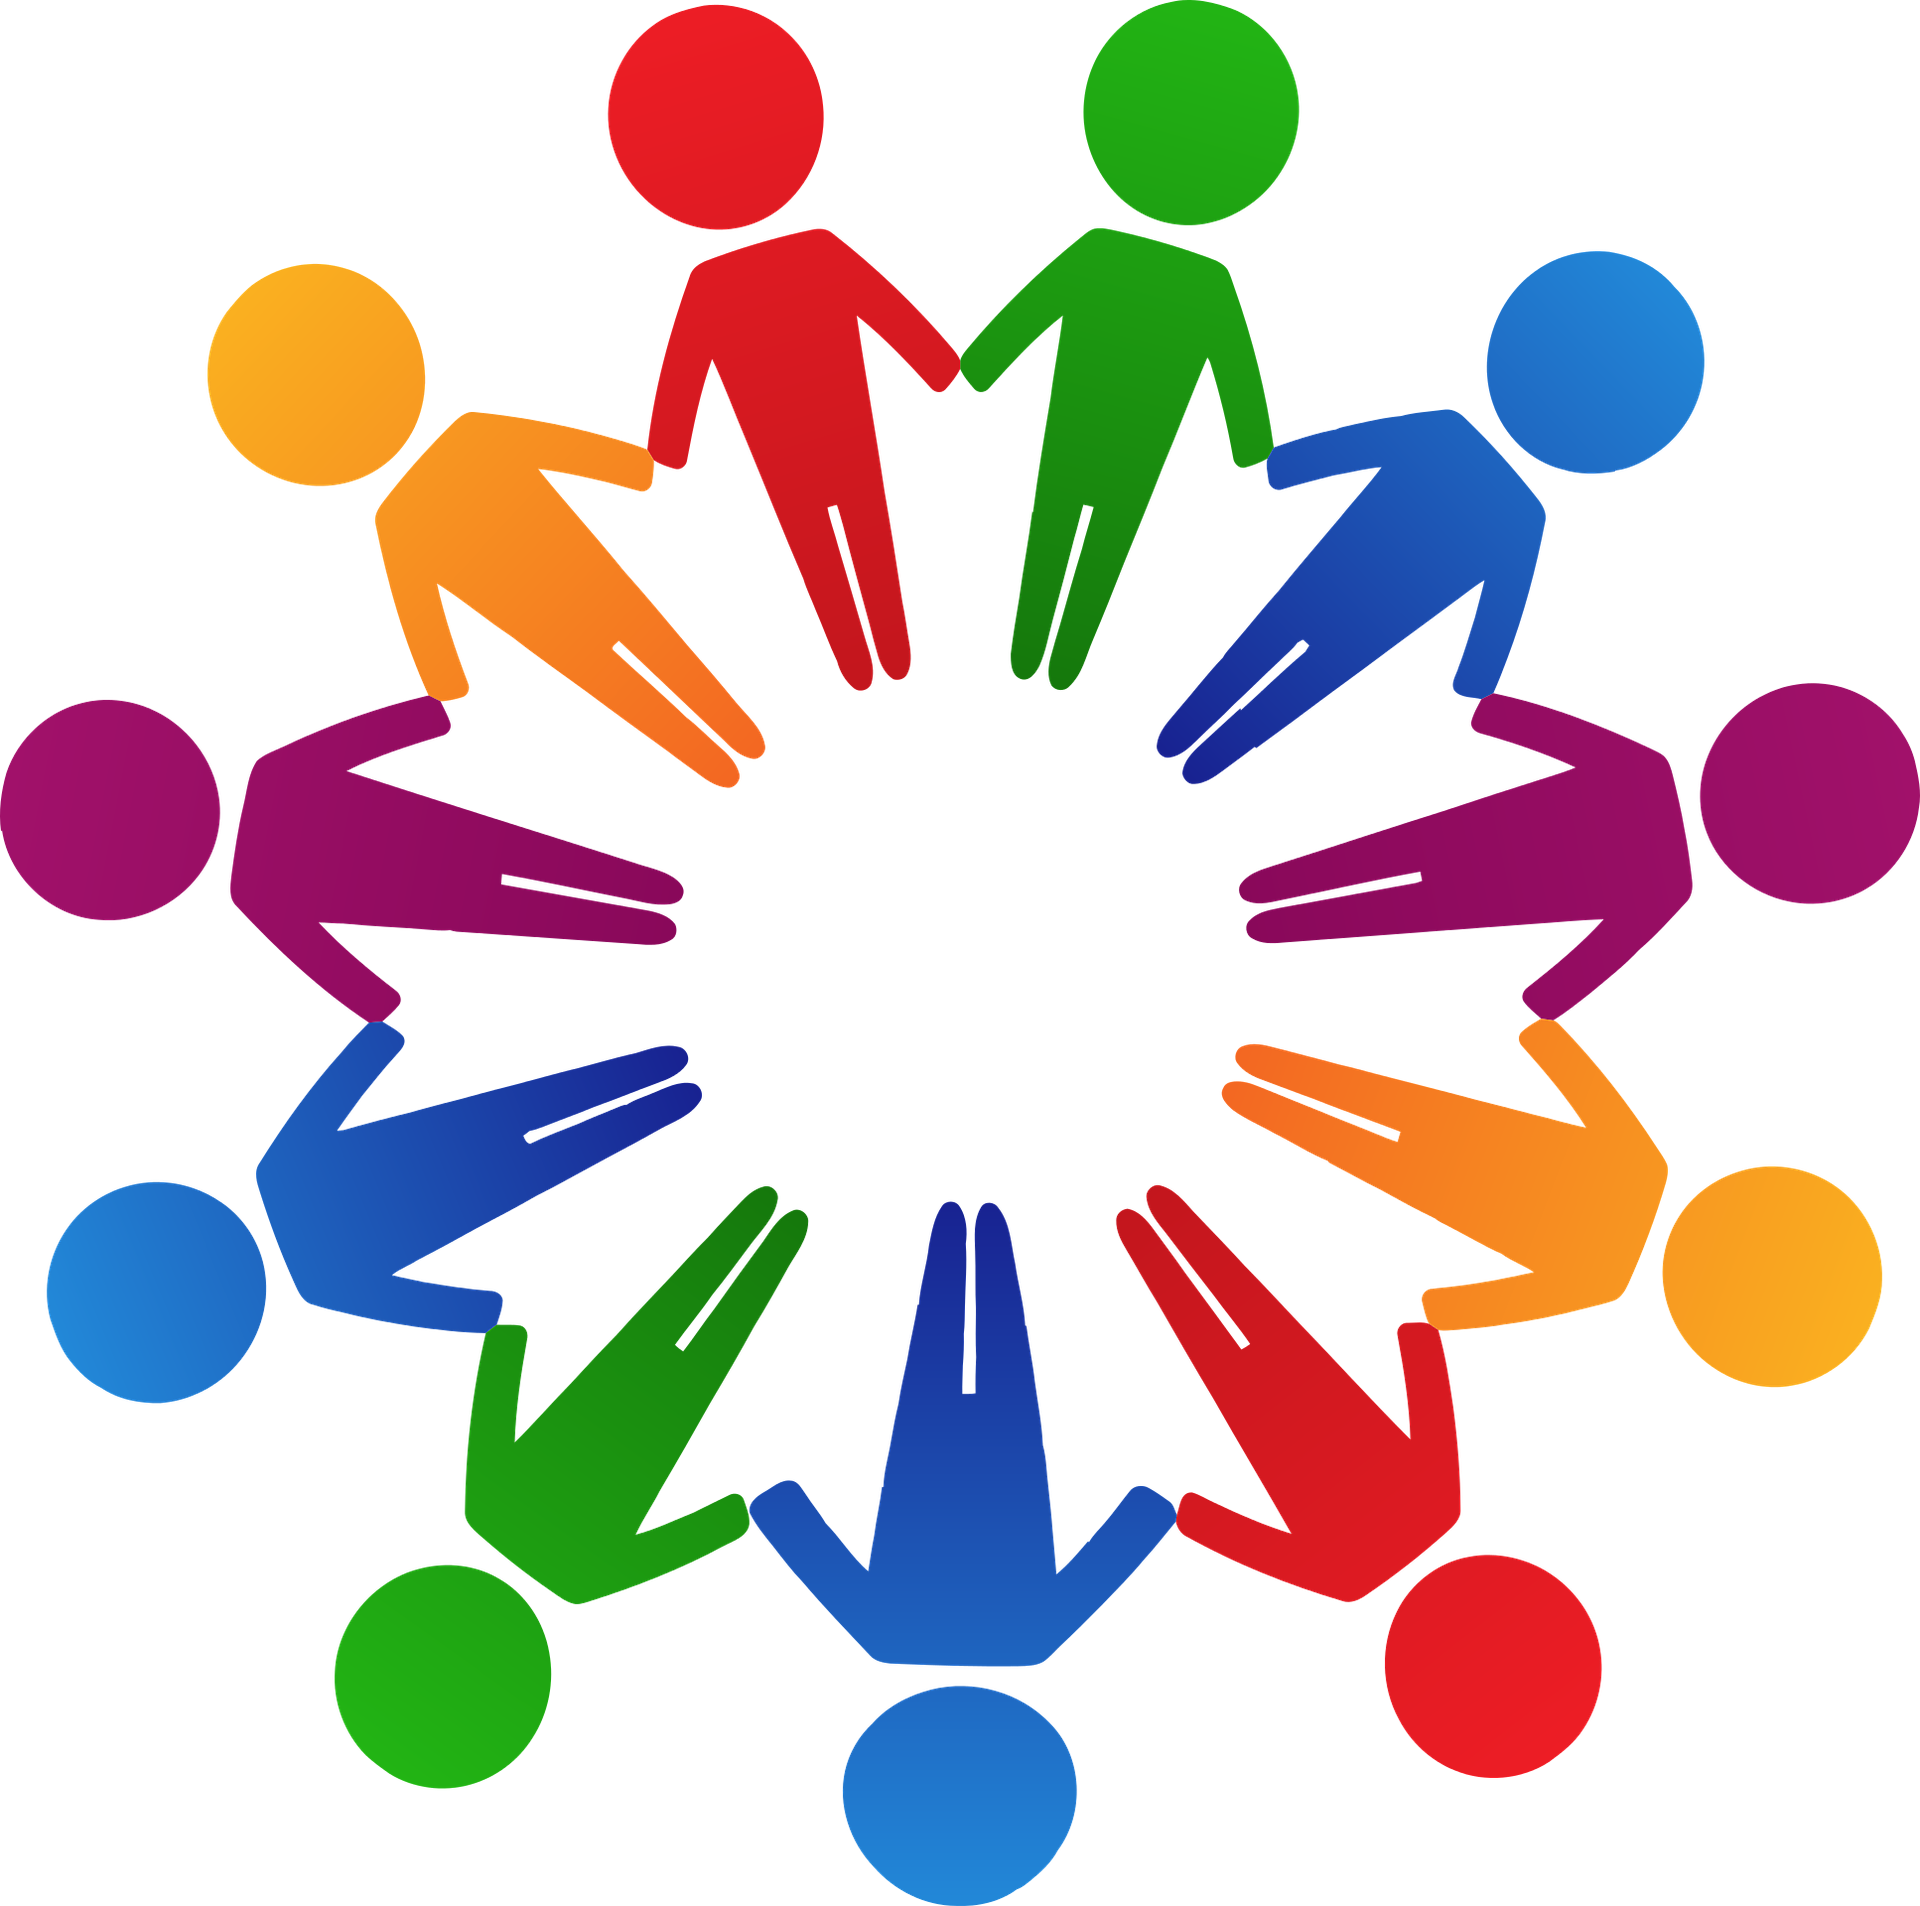 Dickinson area chamber alliance. Circle clipart community